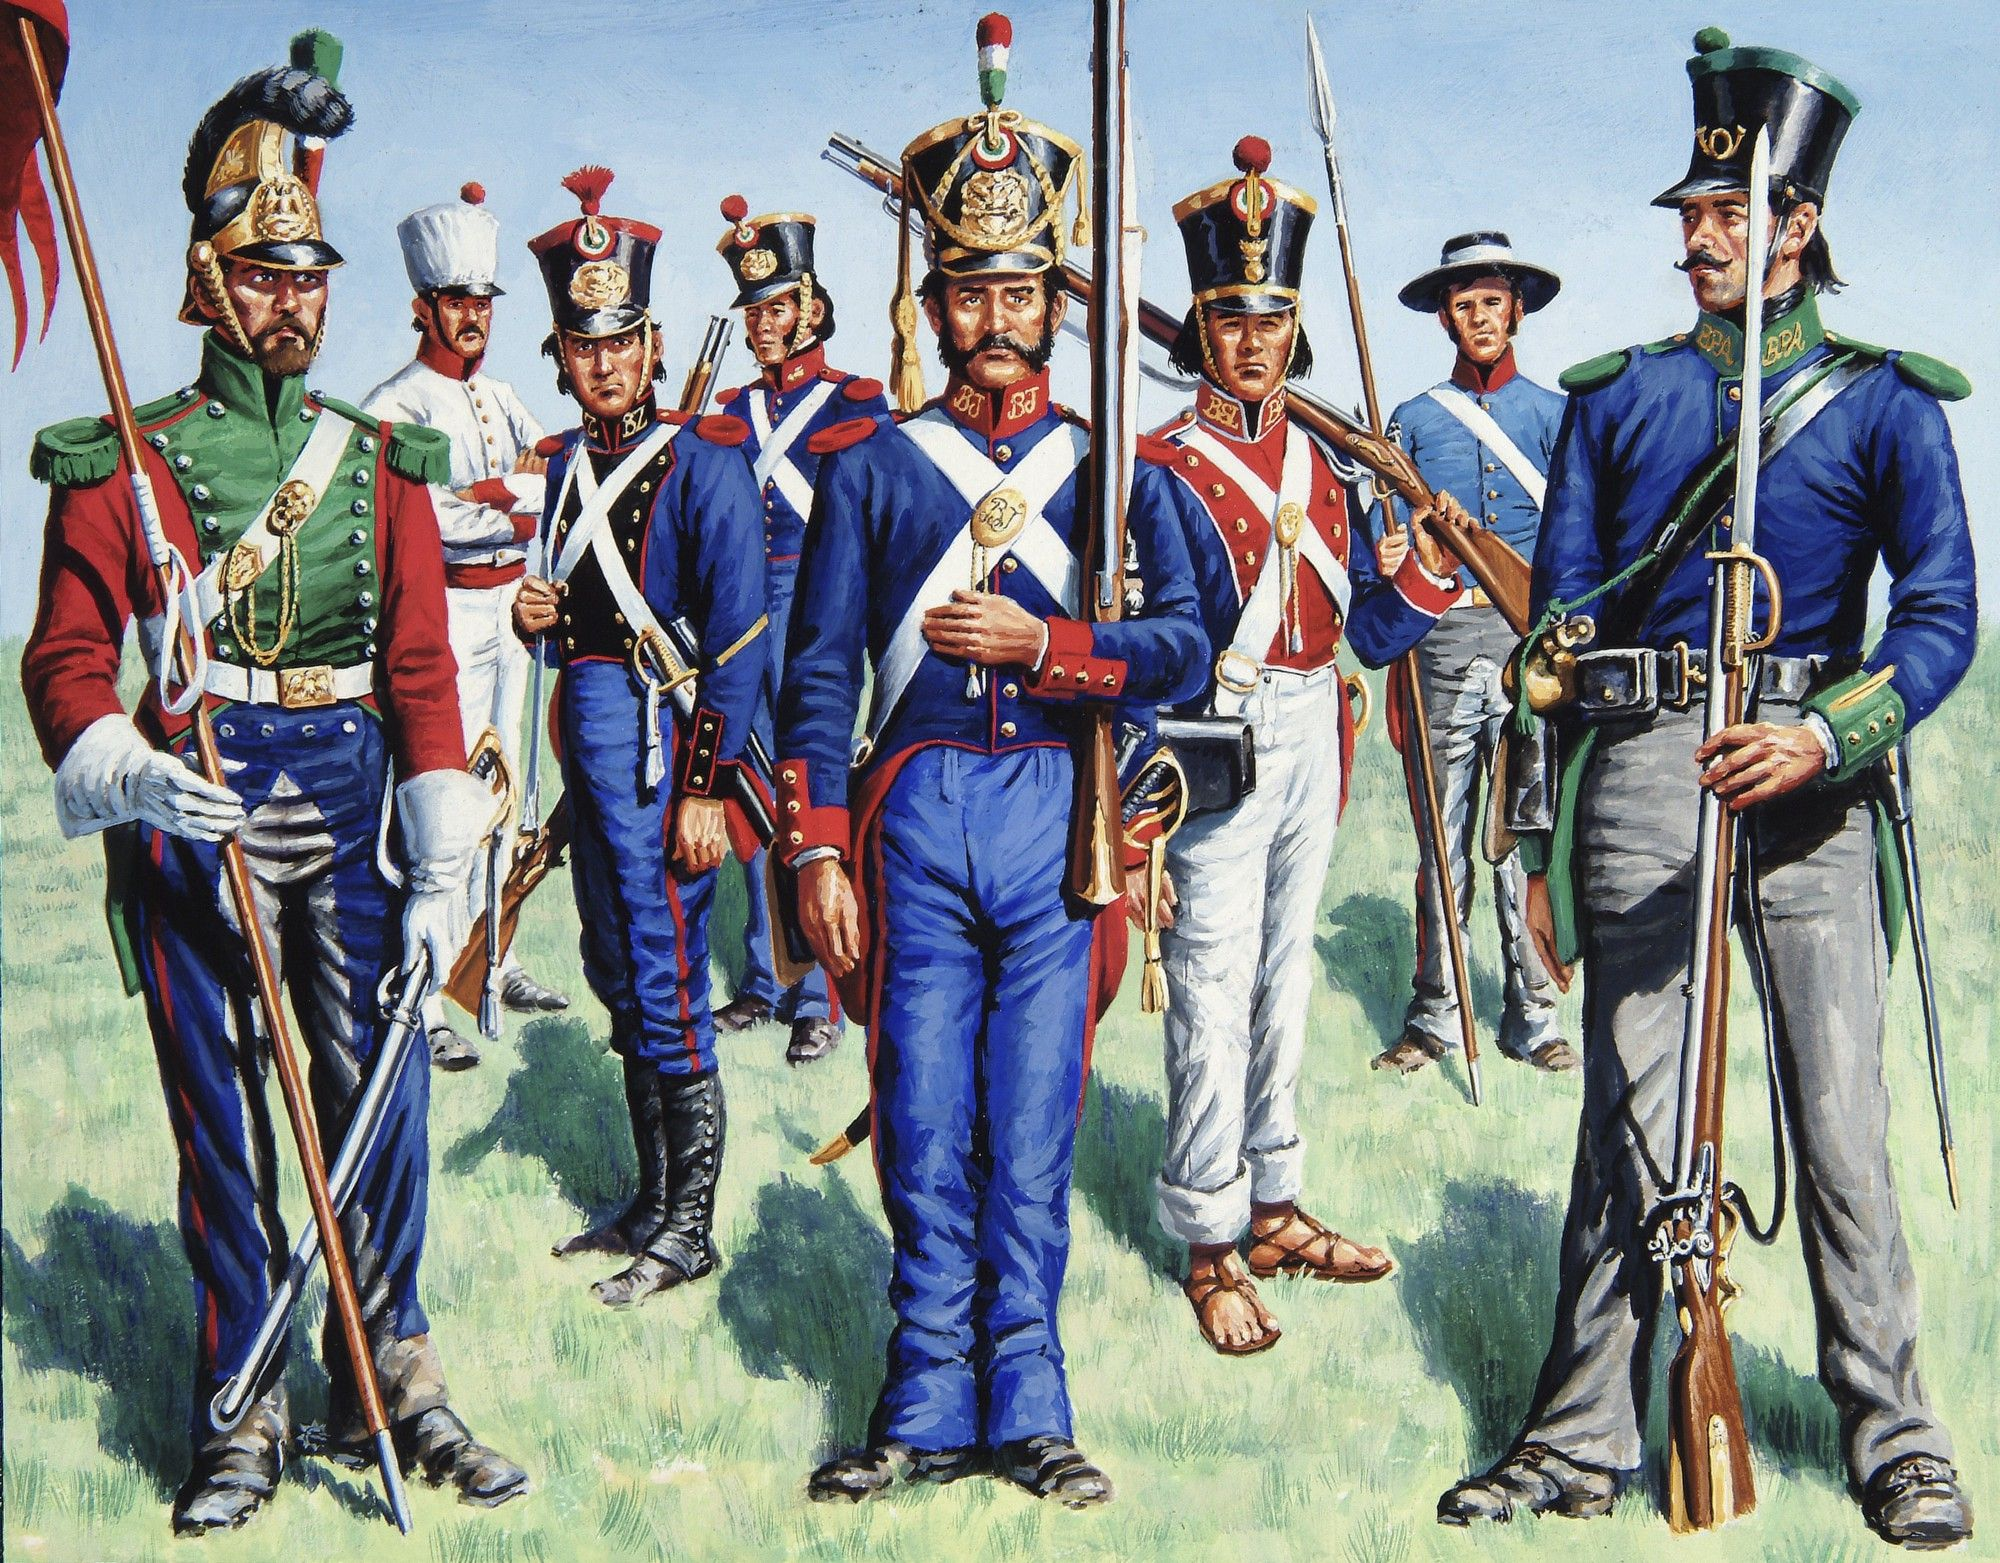 mexican american war final Mexican-american war is the war between the united states and mexico that began in 1846 and ended in 1848 this war broke out because of the unresolved conflicts between the us and.